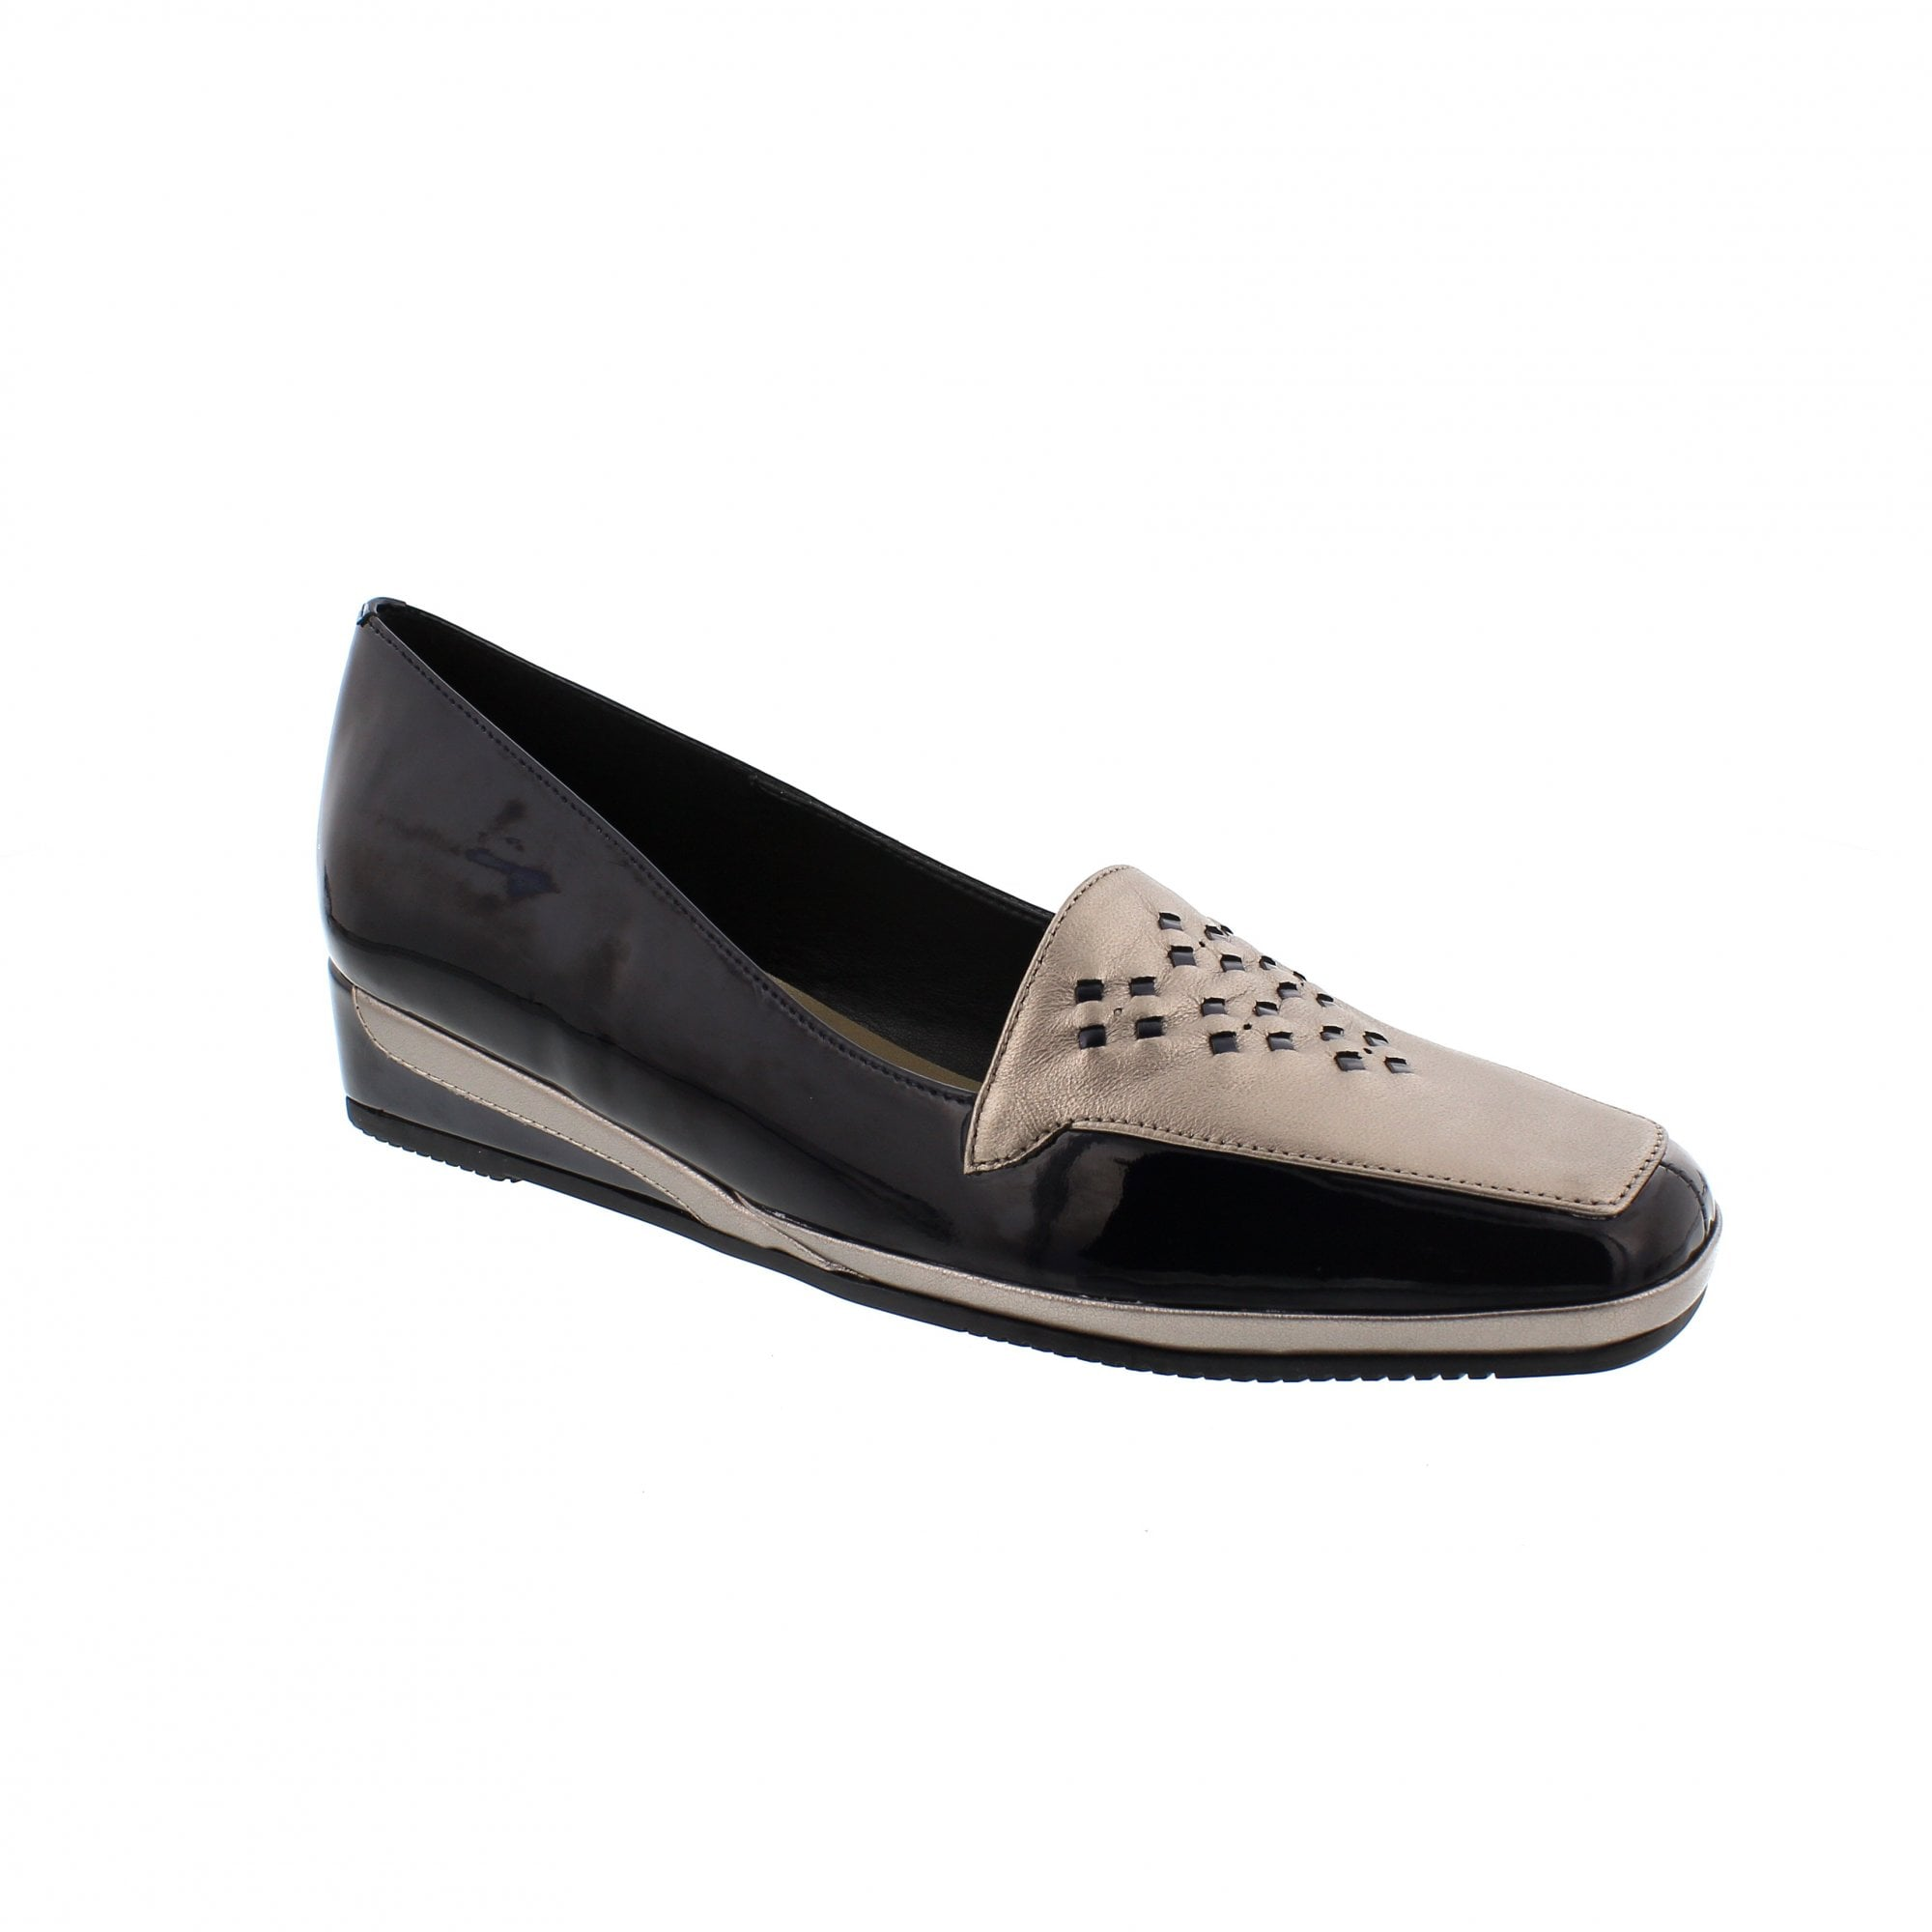 9647b8a797a45 Van Dal Verona II 1298410 Navy/Pewter Slip On Shoes | Rogerson Shoes